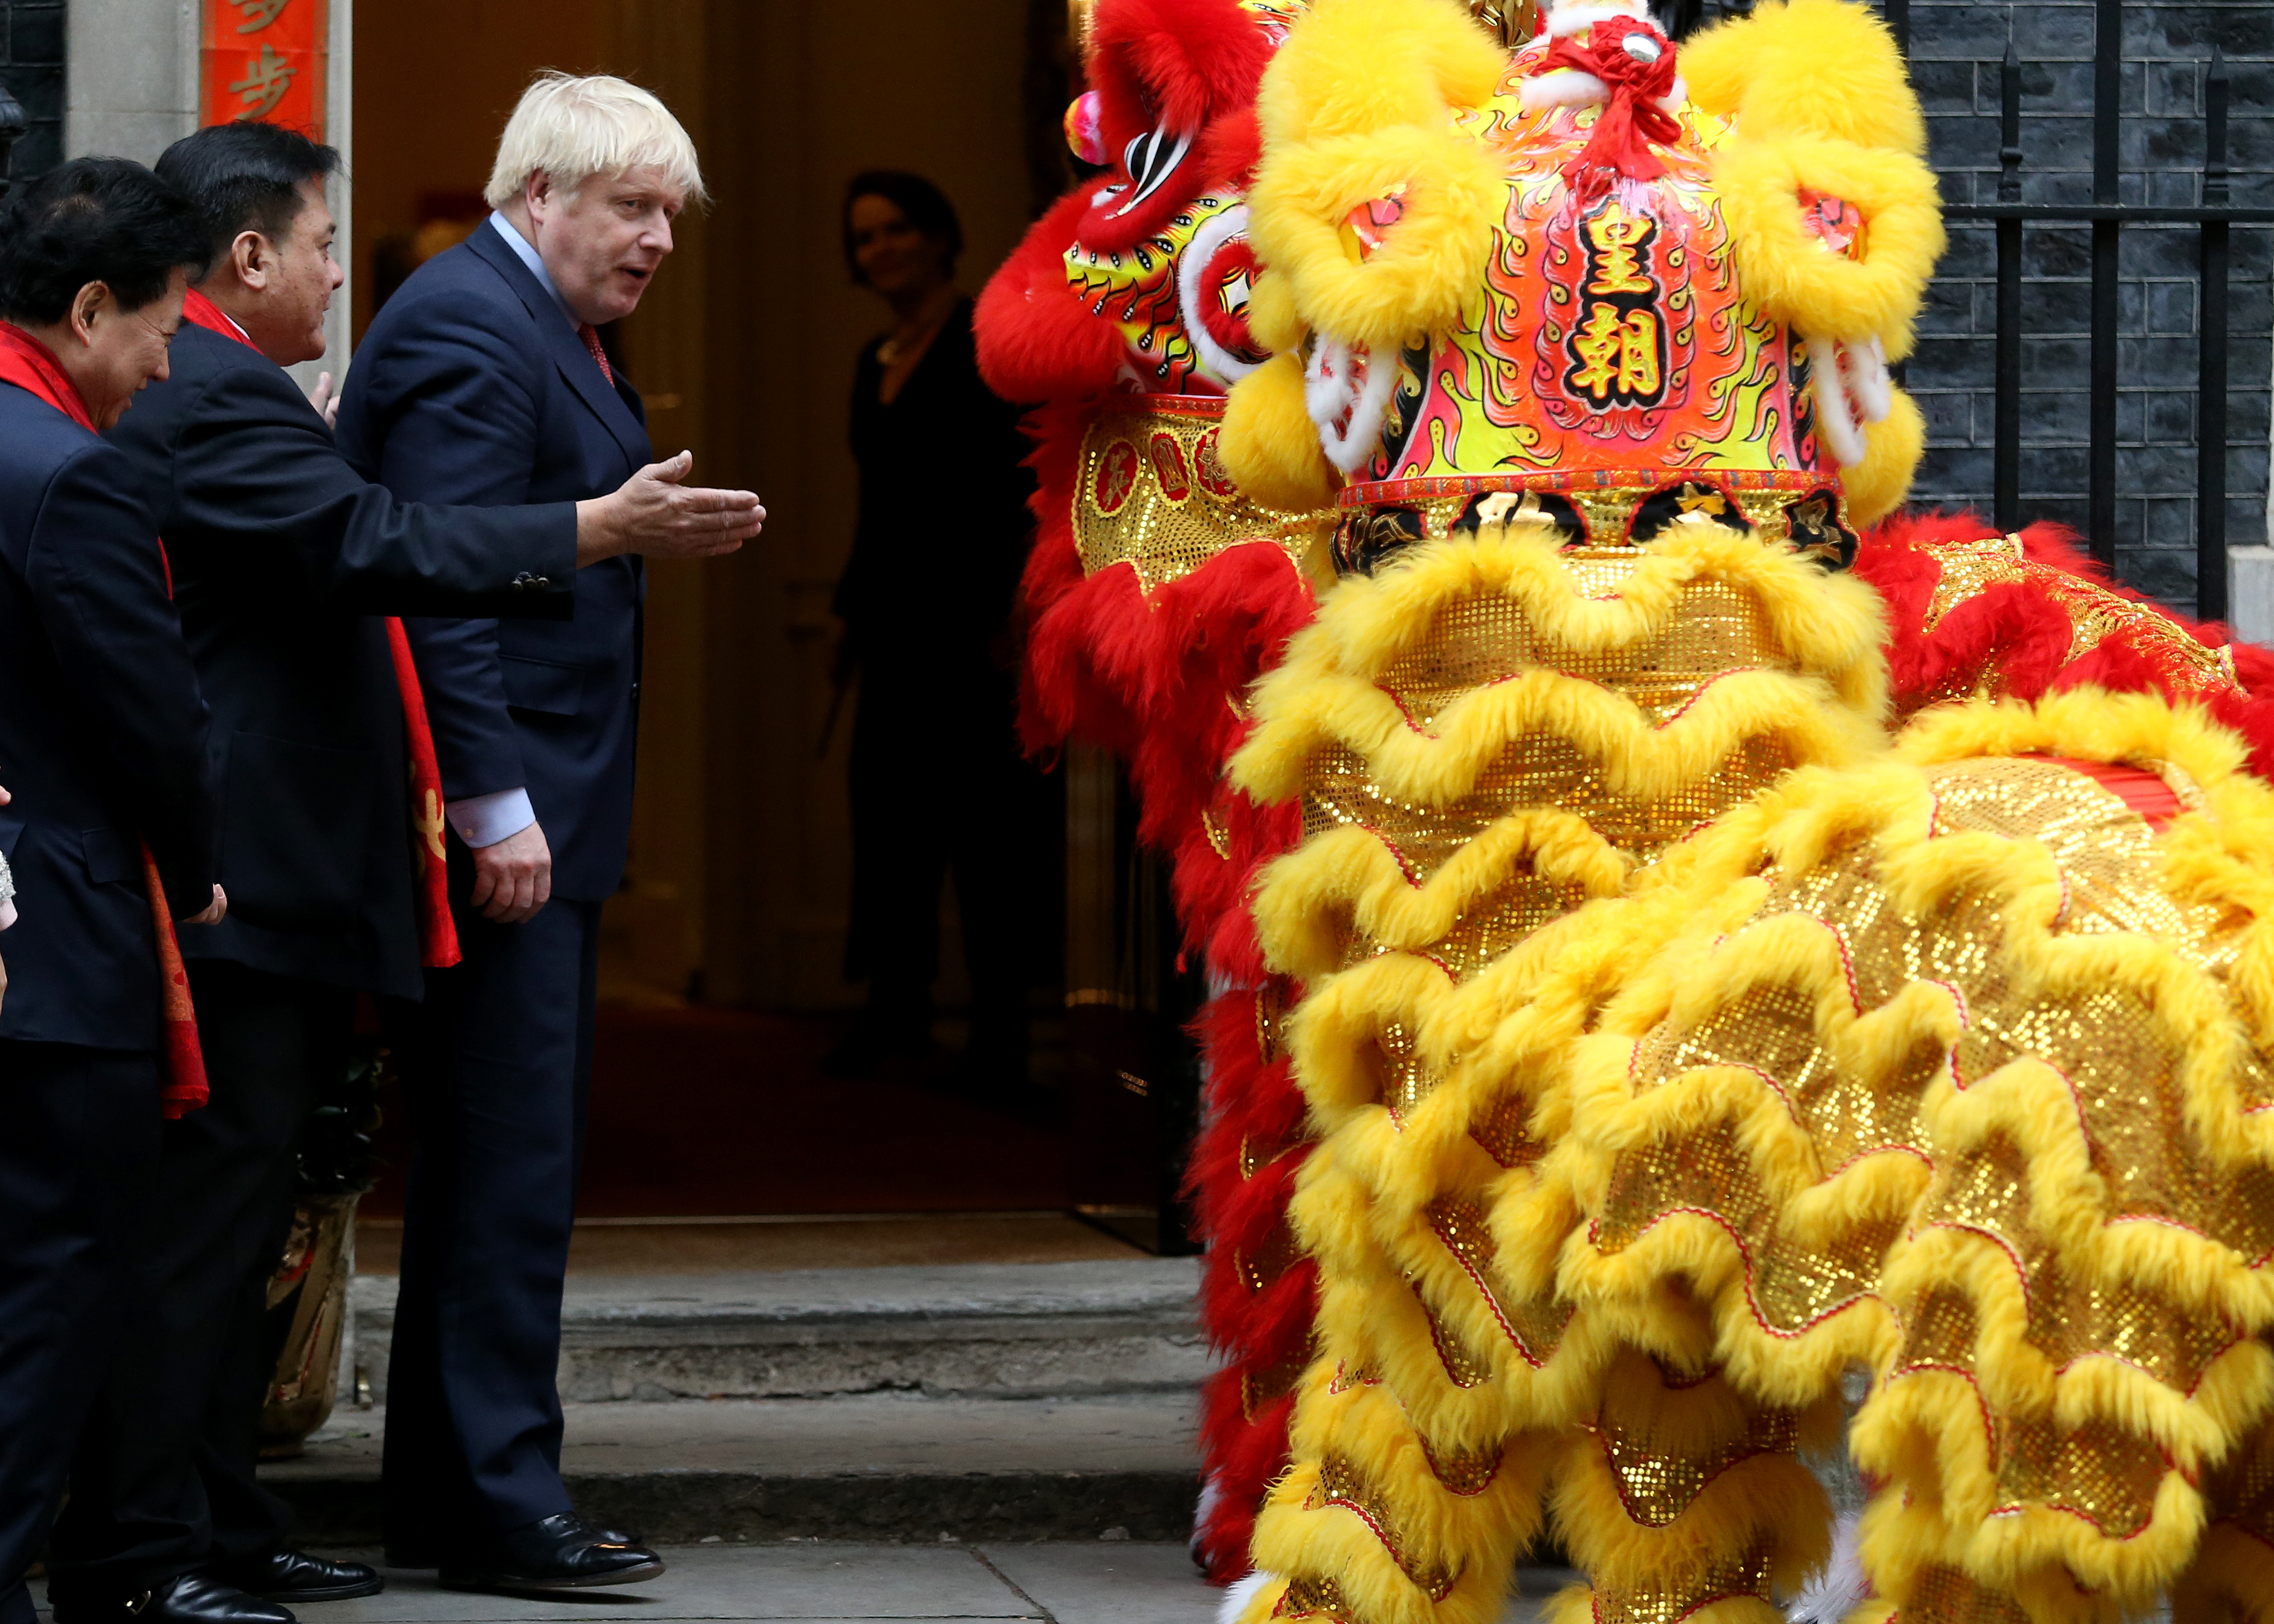 U.K. Prime Minister Boris Johnson speaks with guests as he hosts Chinese New Year celebrations outside 10 Downing Street on January 24, 2020, in London, England. In a potential rebuke to the Trump administration, the U.K. is reportedly expected to grant Chinese telecom giant Huawei some access to its nascent 5G network. (Lauren Hurley/Getty Images)